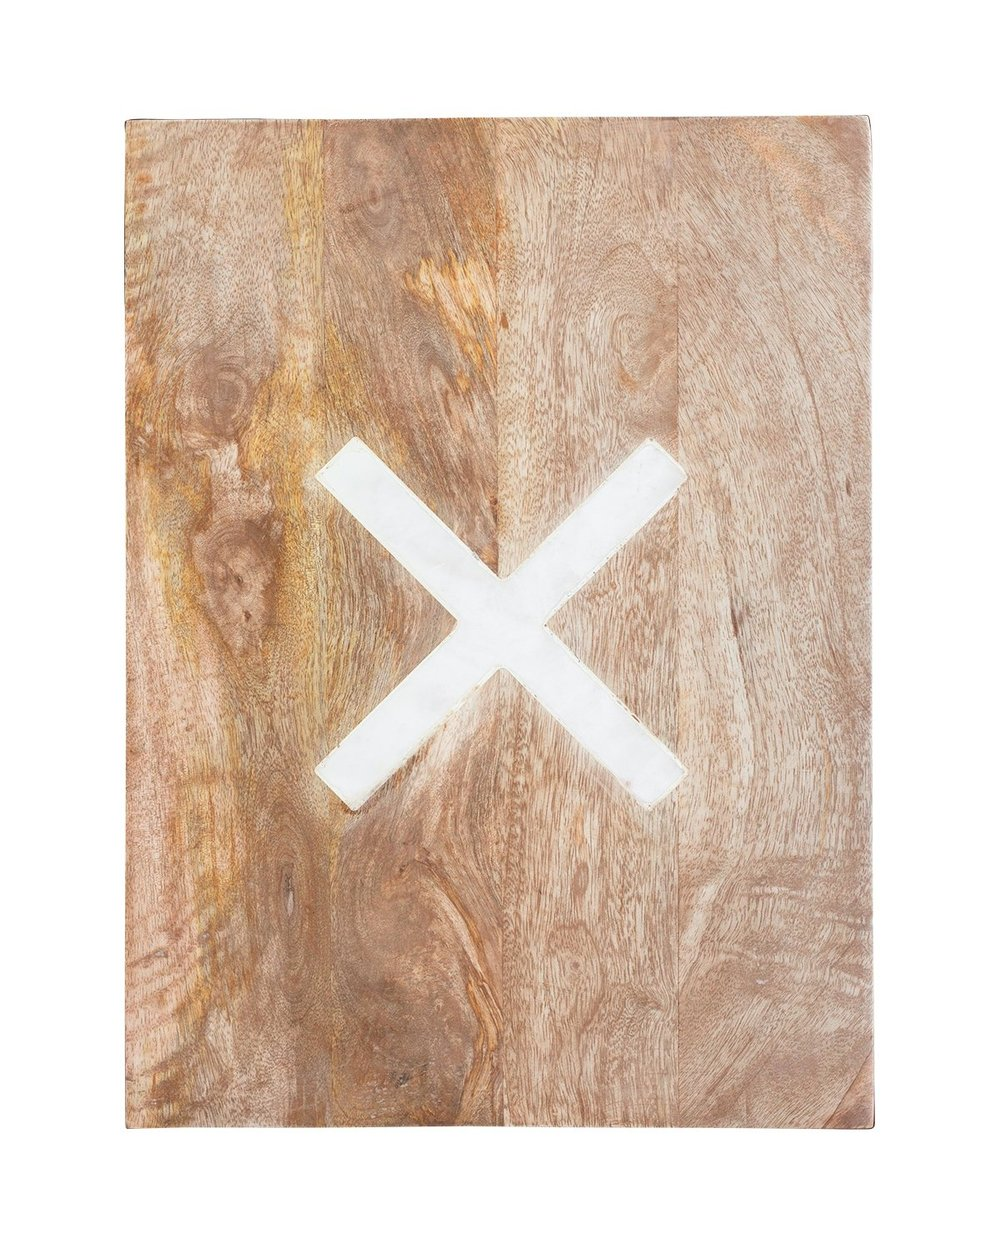 Marble_X_Cutting_Board_1.jpg